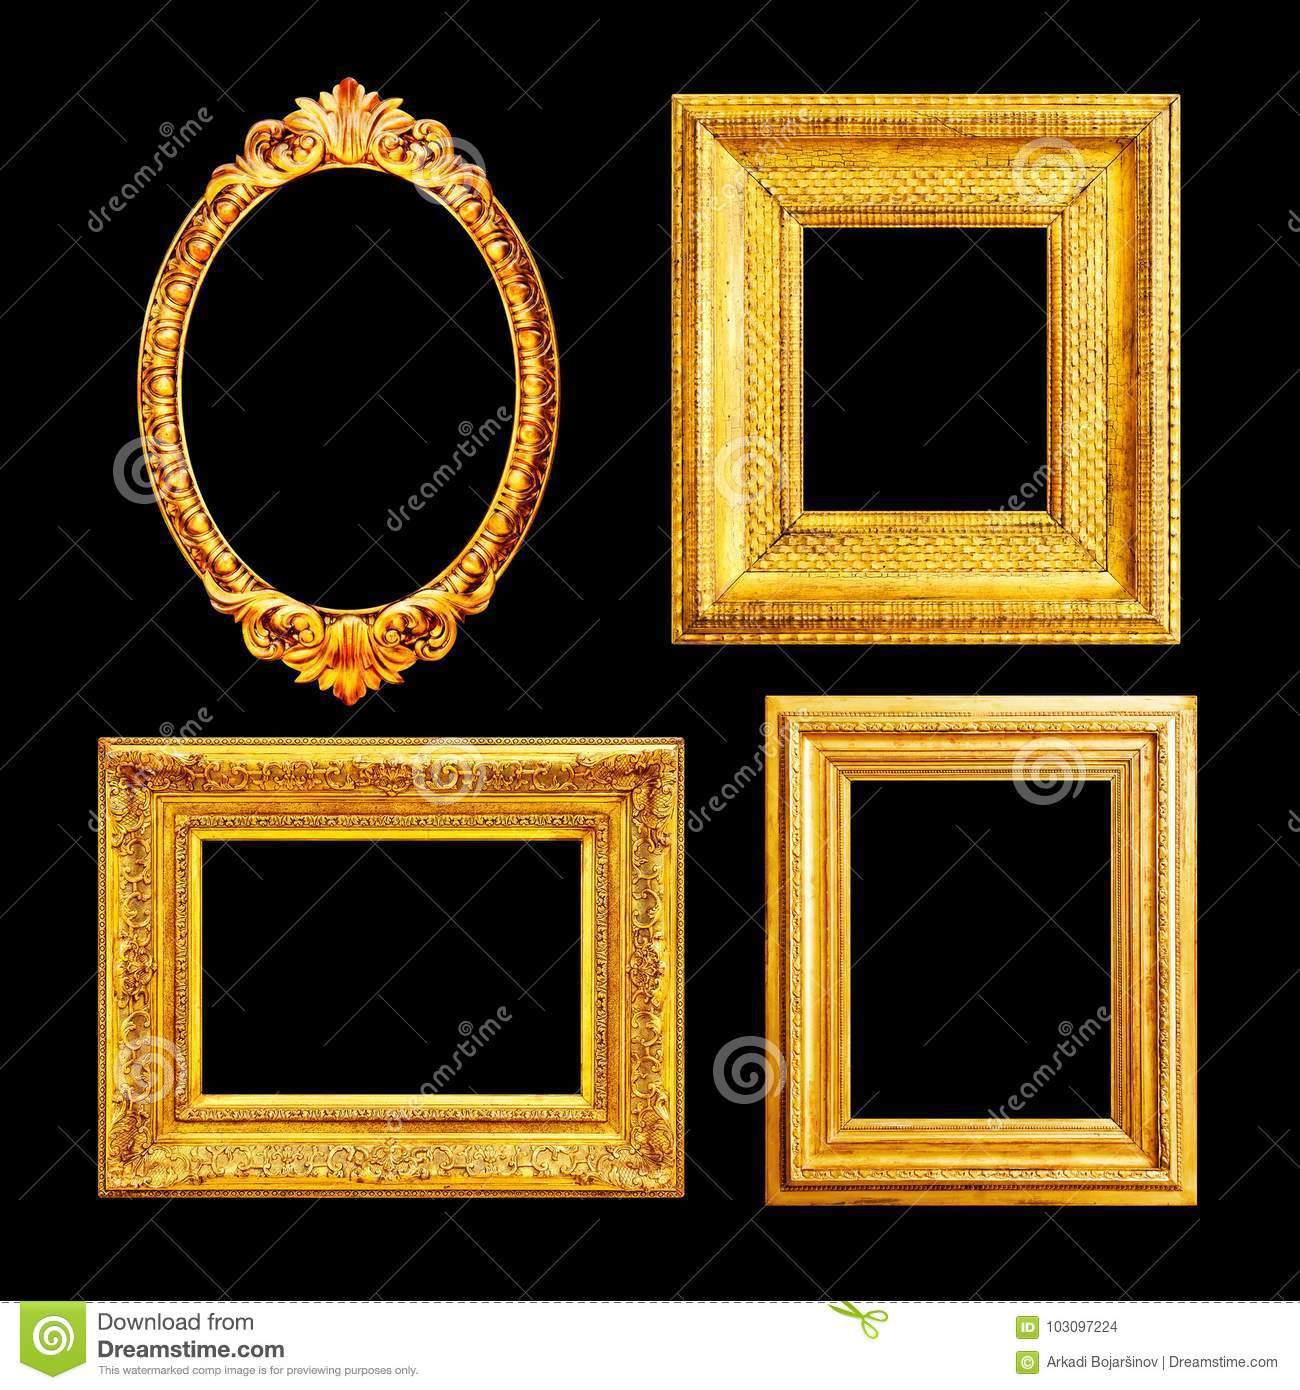 Ornate Luxury Gilded Frames Stock Photo - Image of ancient, baroque ...